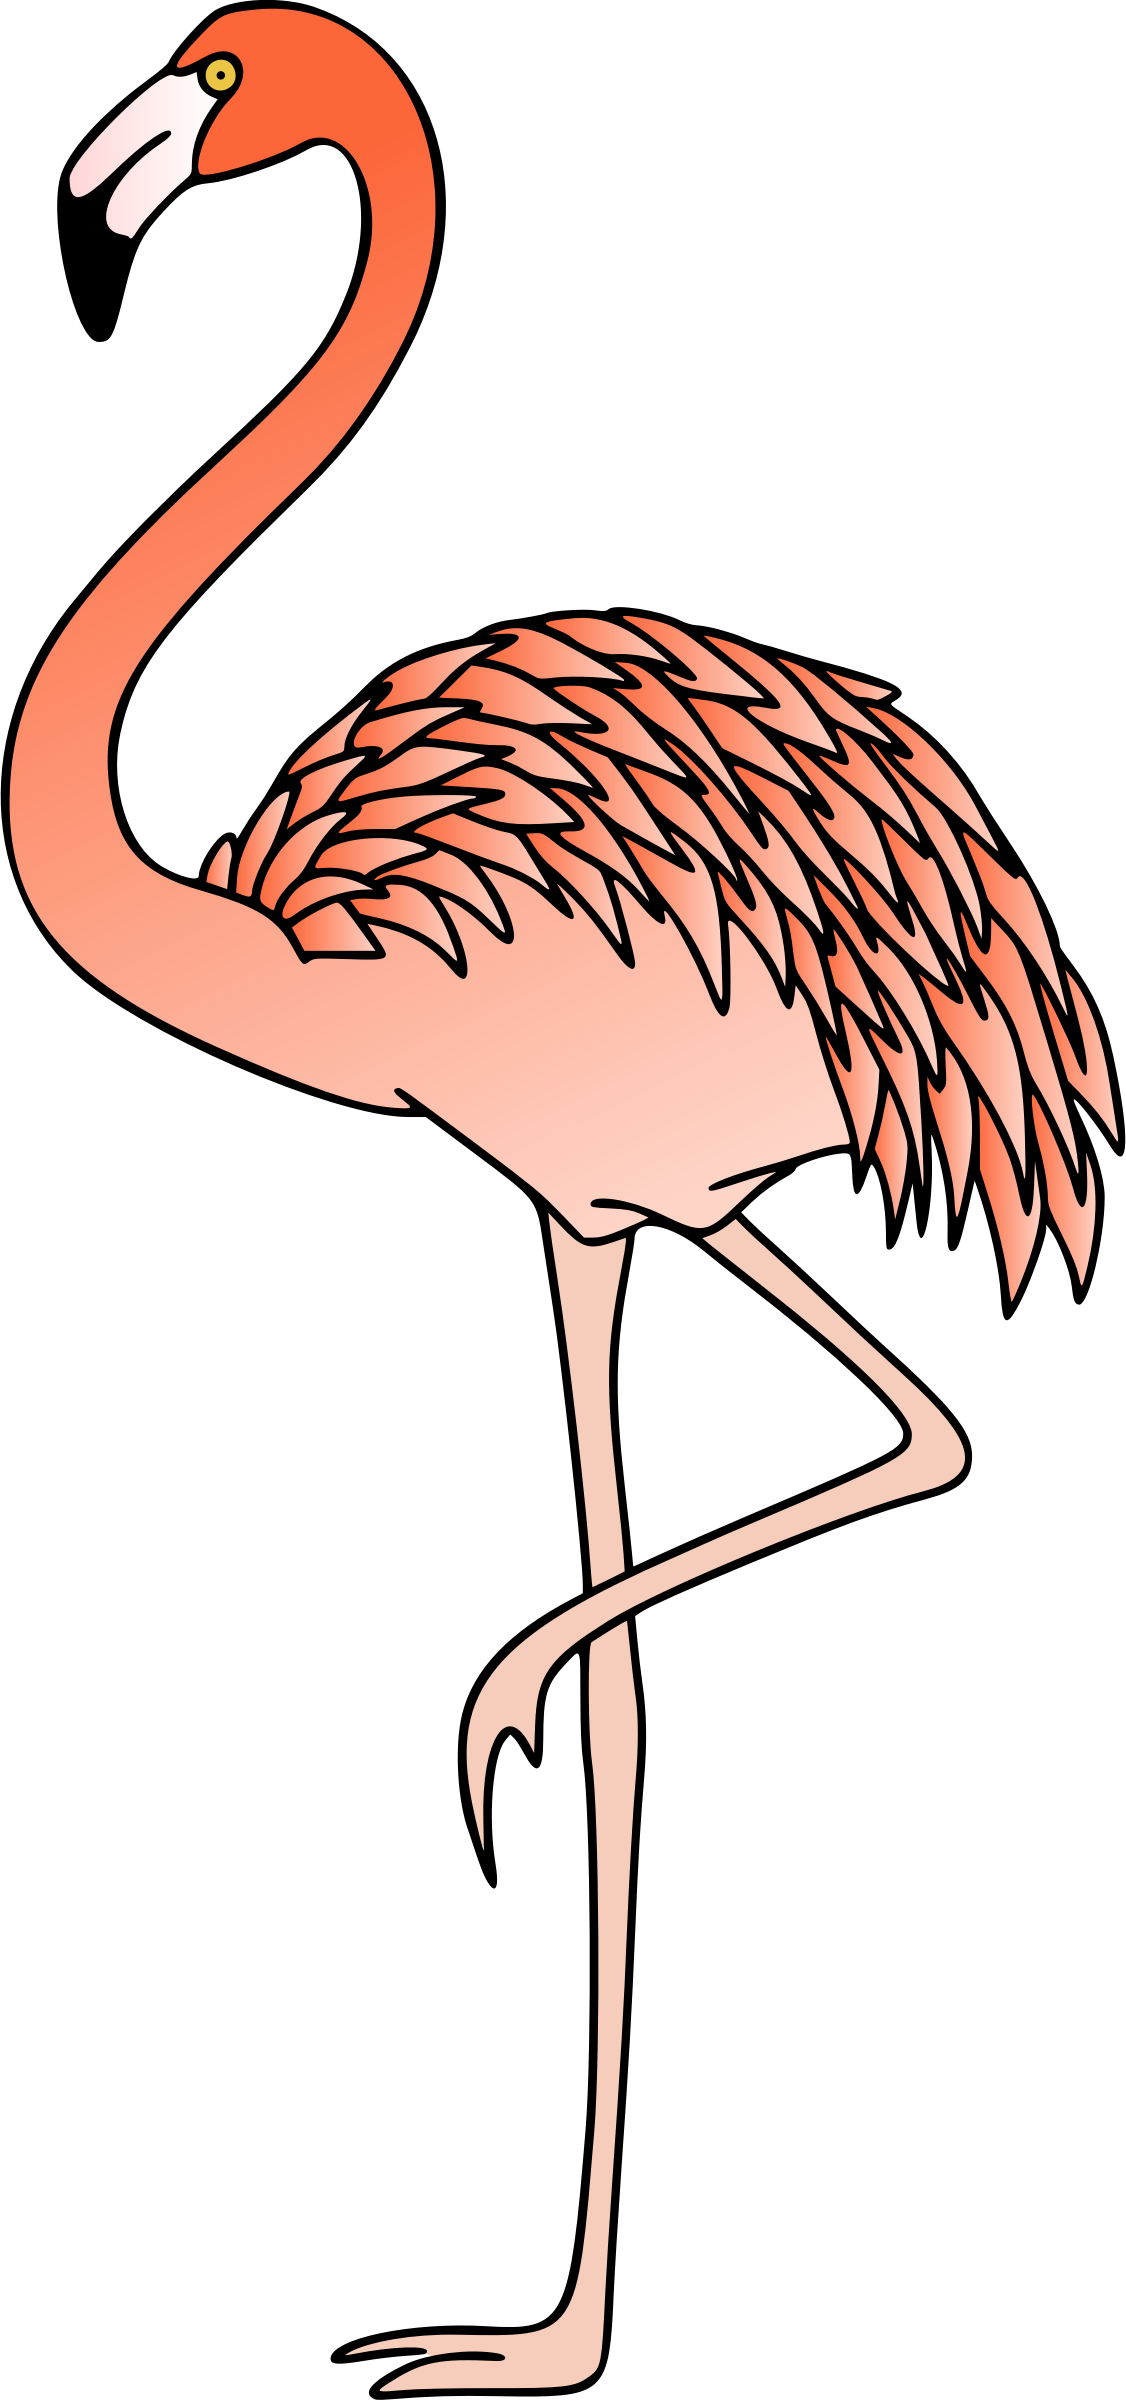 Flamingo 3 (colour) by Firkin